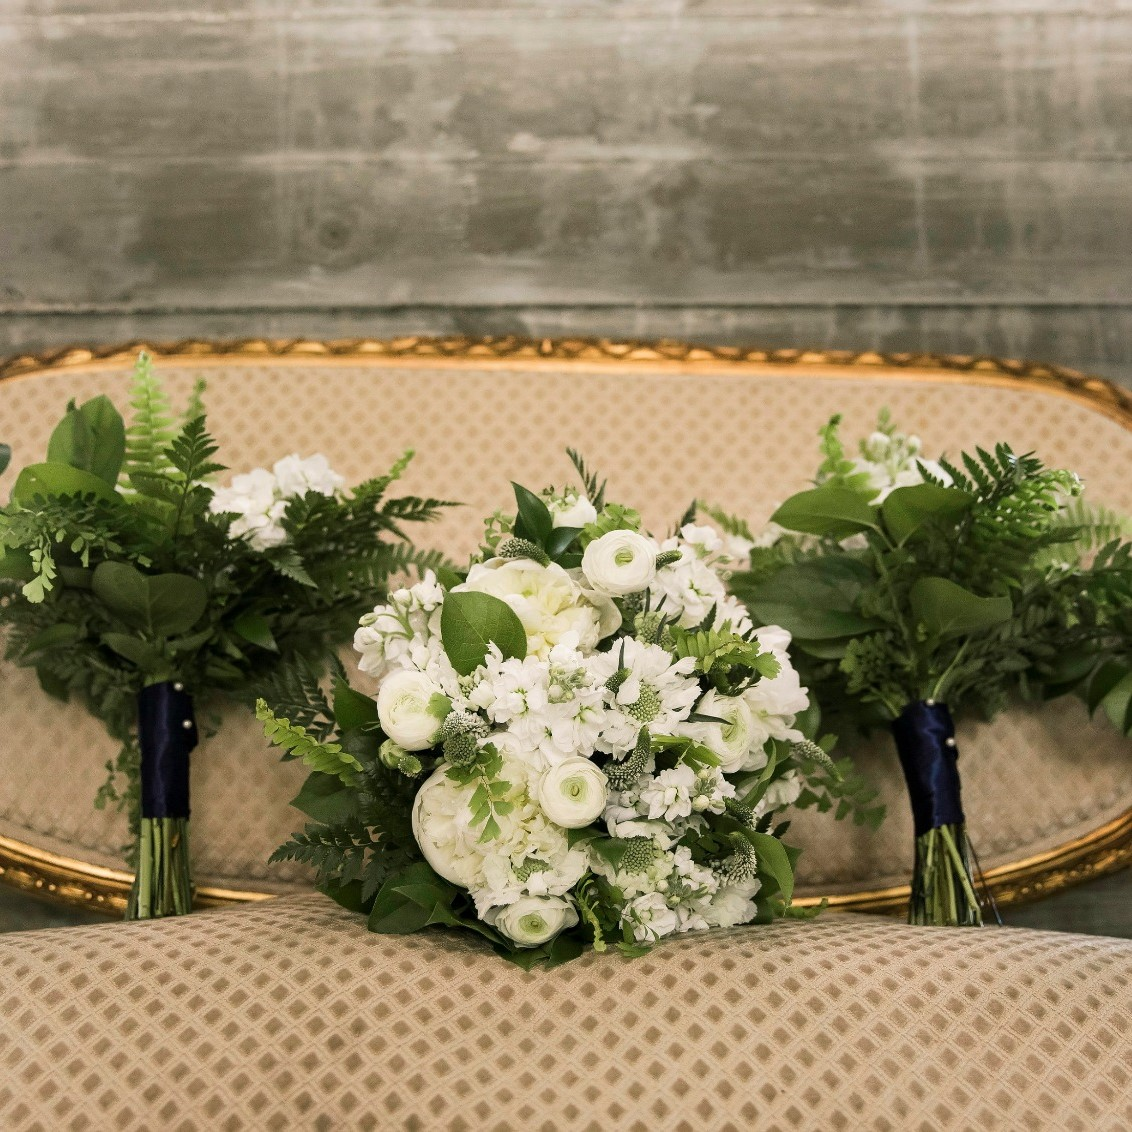 The beautiful bouquets for the bride and her bridesmaids.